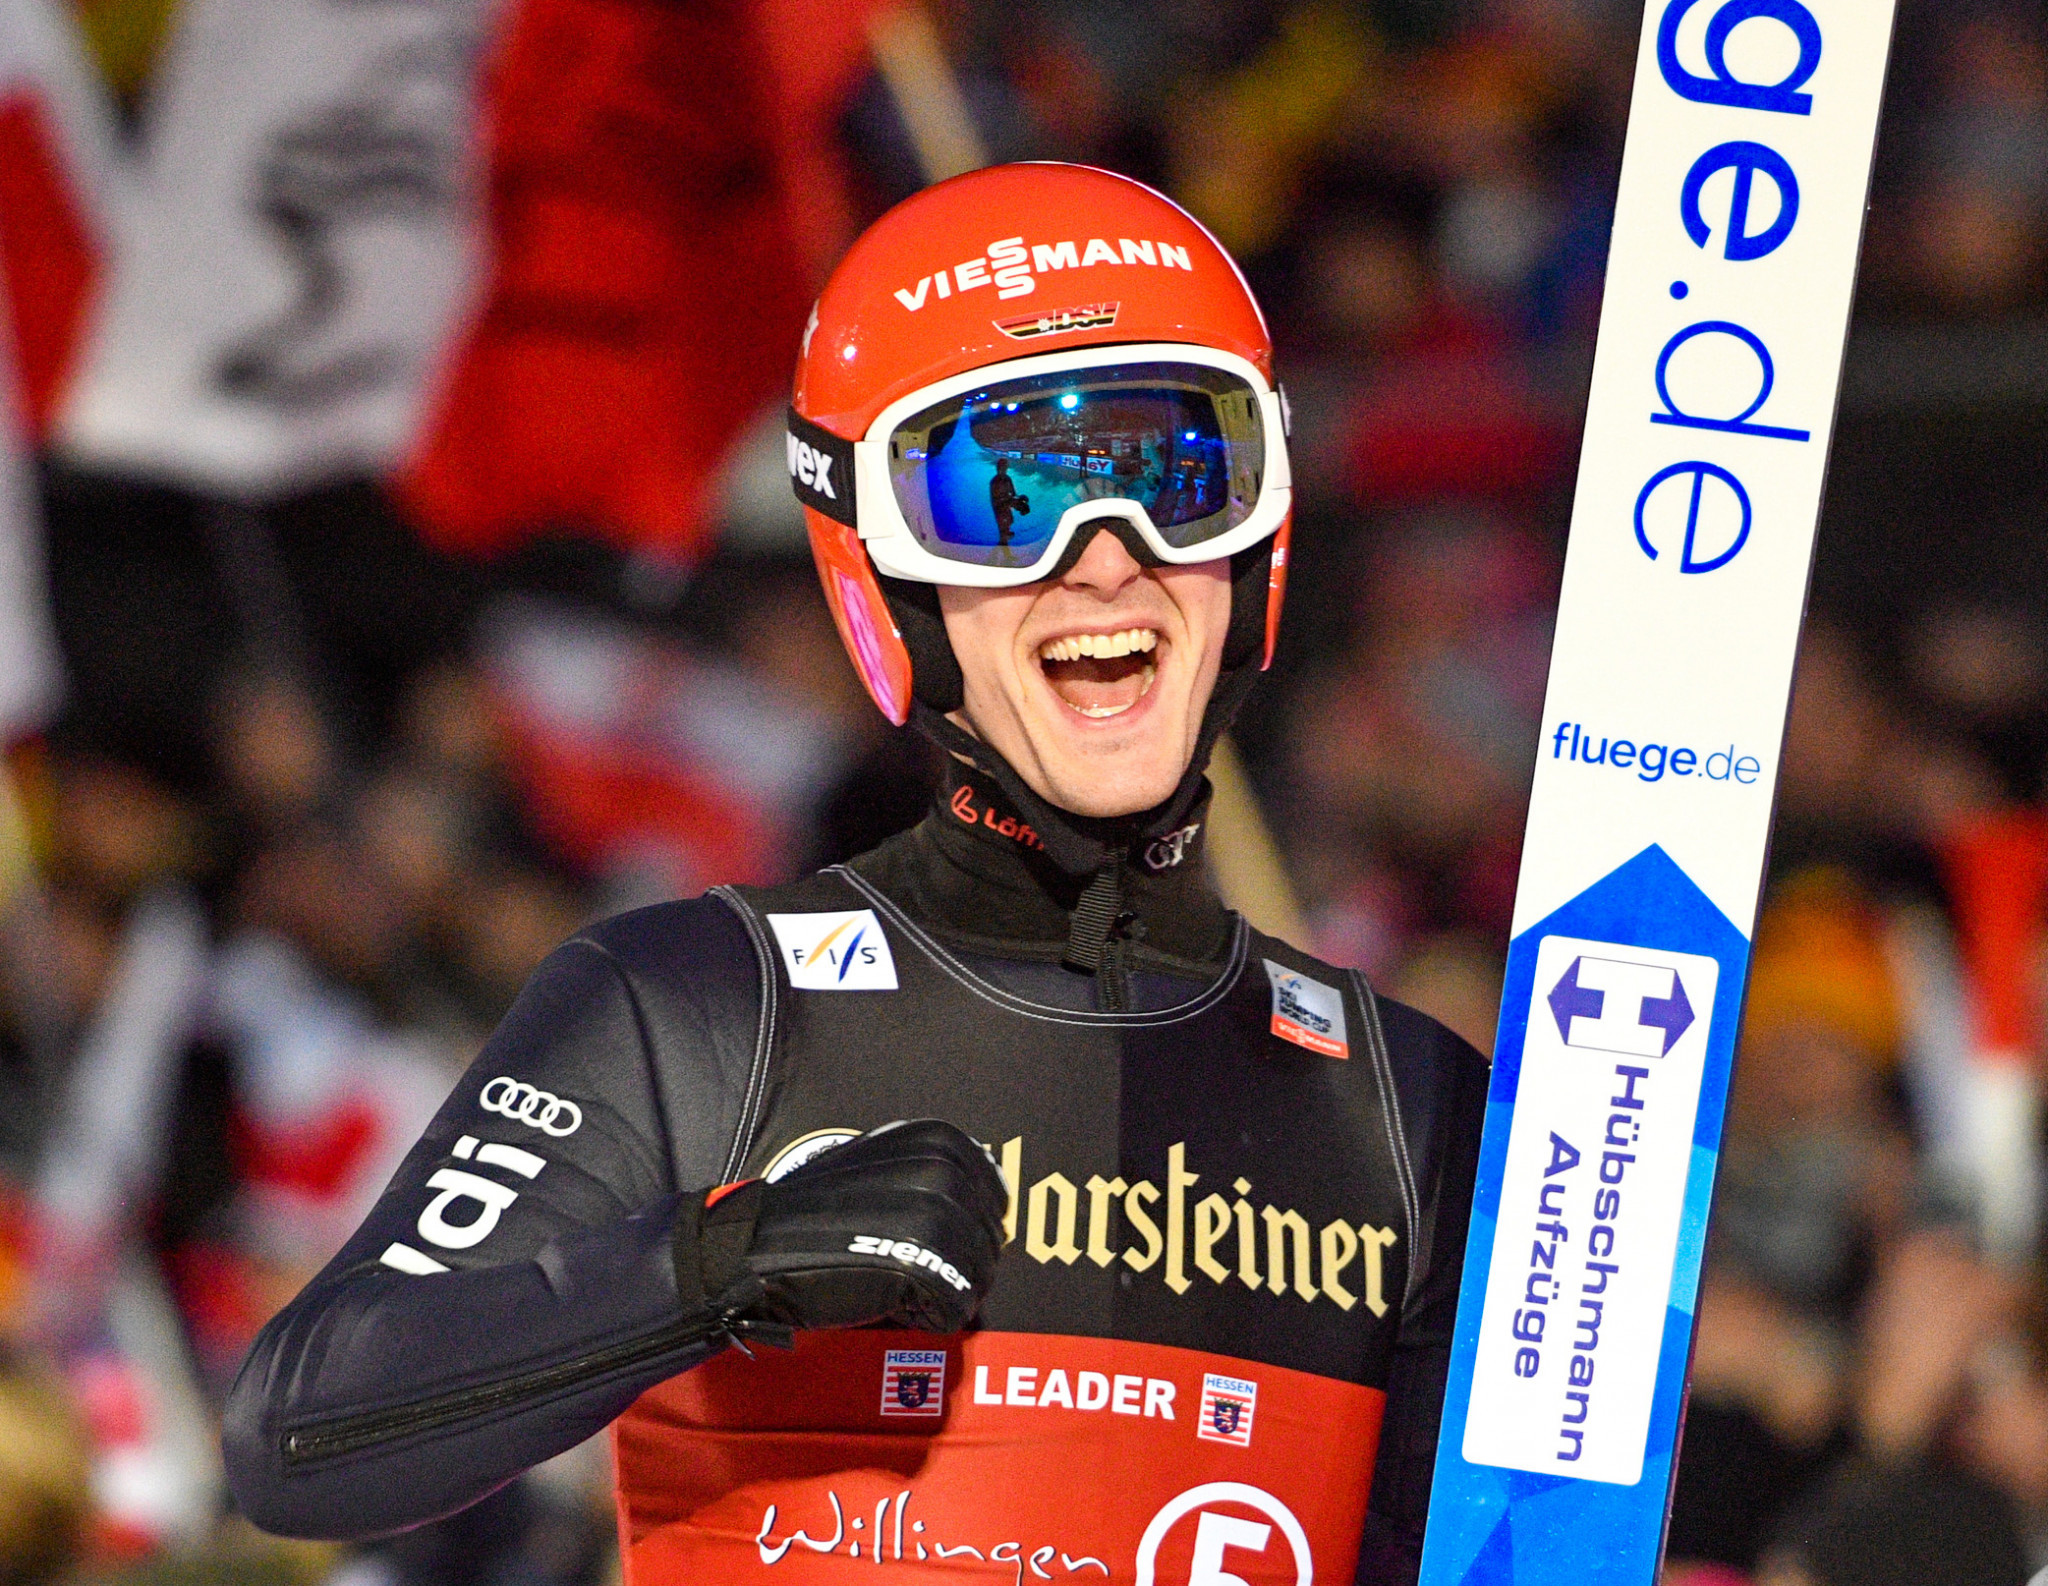 Stephan Leyhe won his first World Cup title last time out in Willingen and will look to build on that confidence ©Getty Images